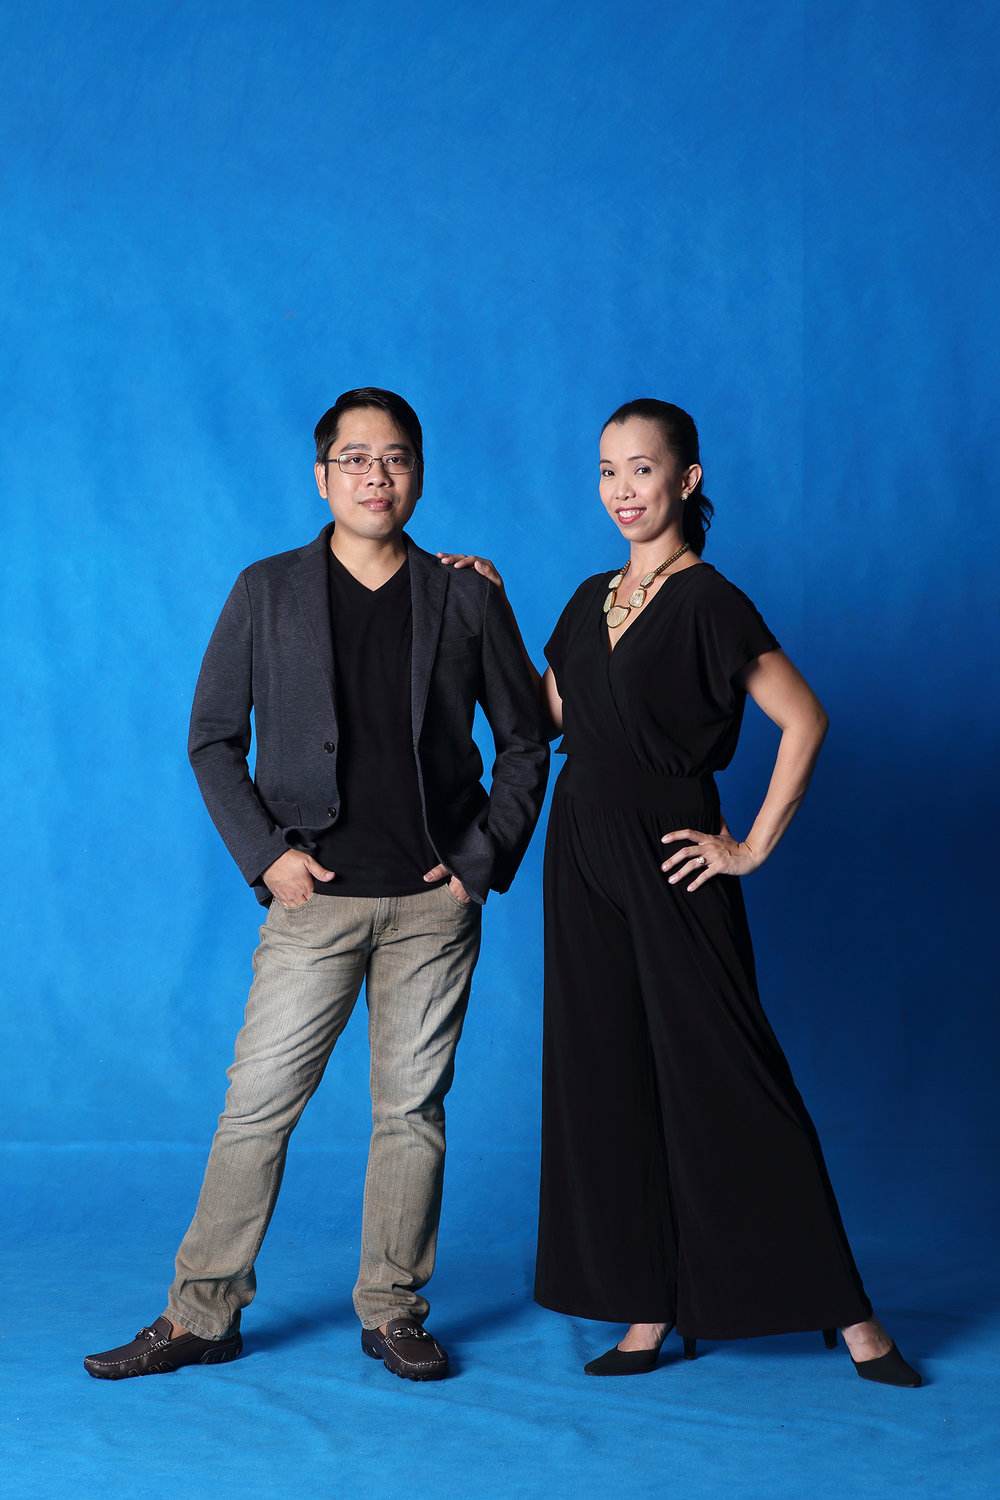 For Jonathan Janolo and Eileen Lopez, patience and love for their work are key to teaching kids at Ballet Manila.